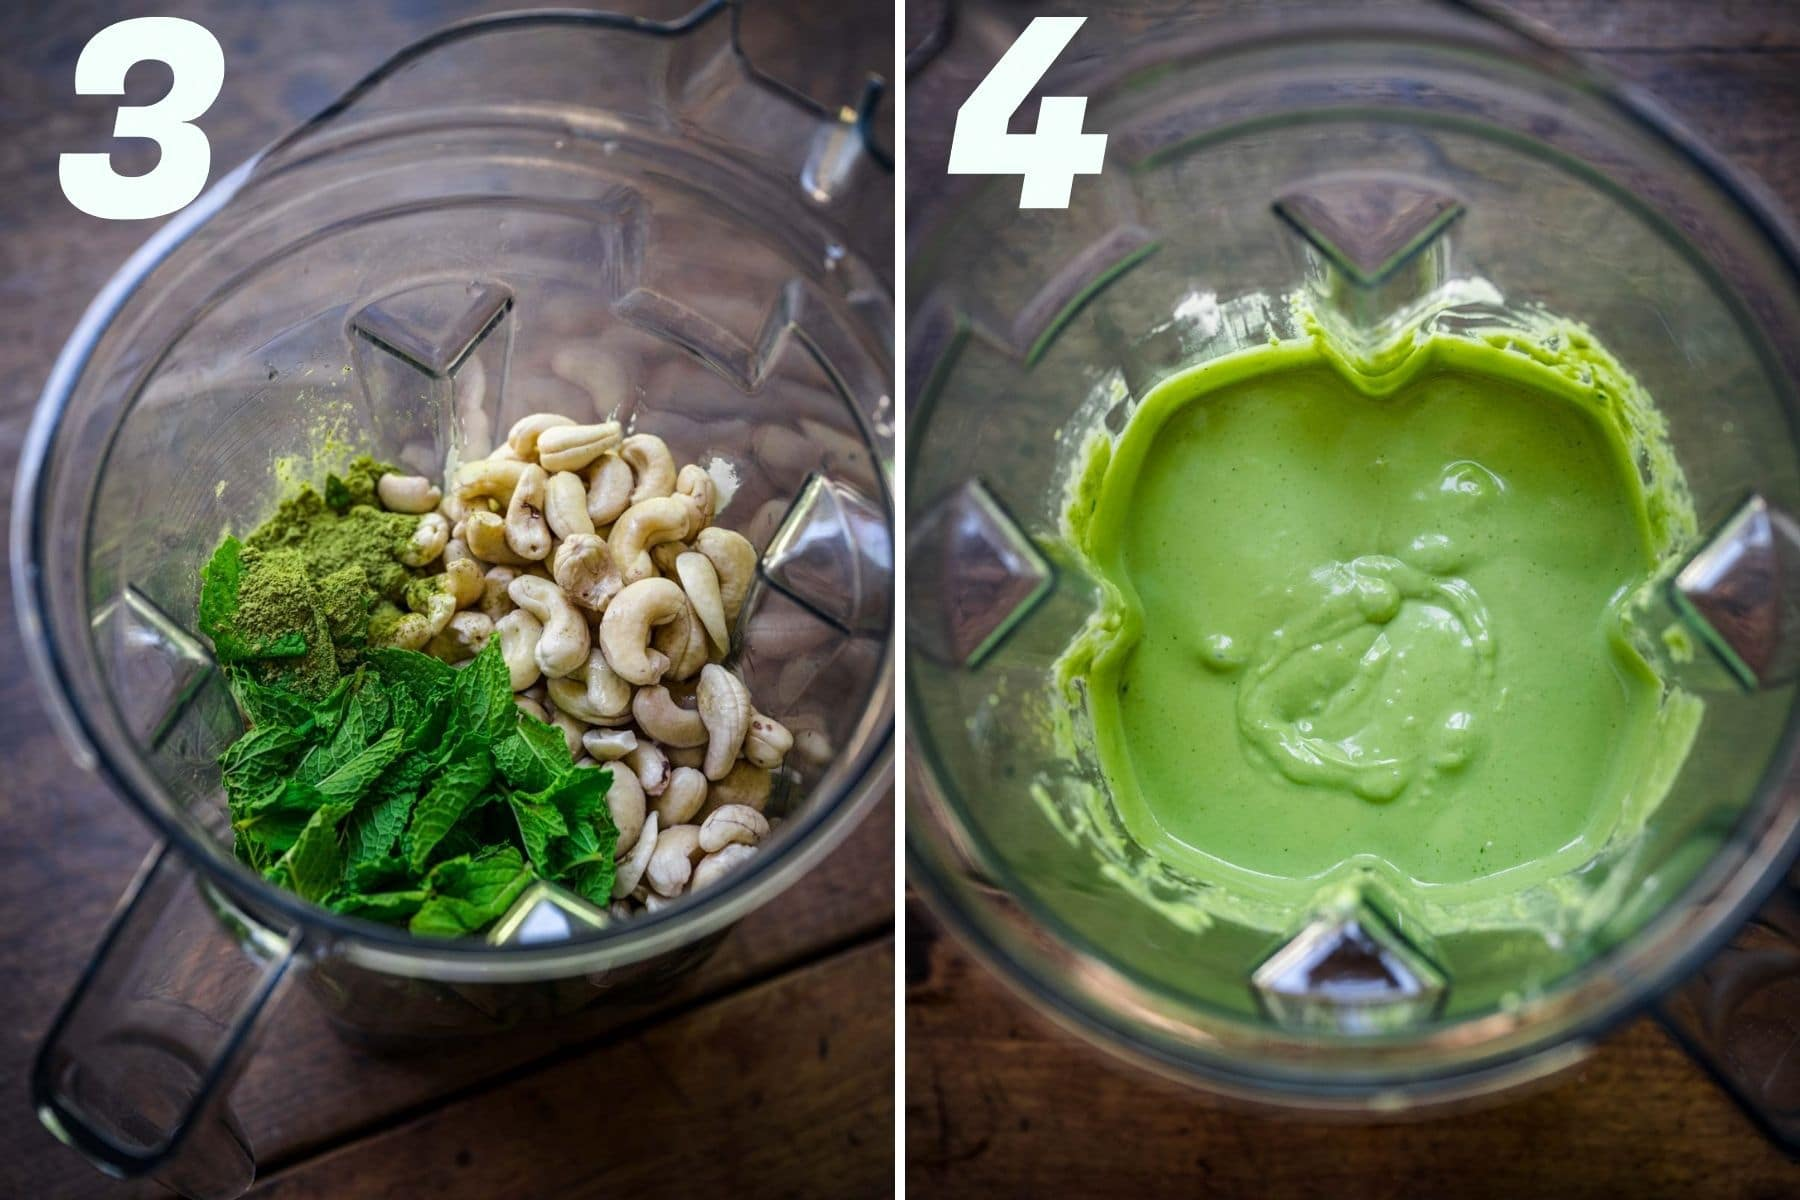 On the left: cheesecake ingredients in a blender. On the right: cheesecake mixture after blending.